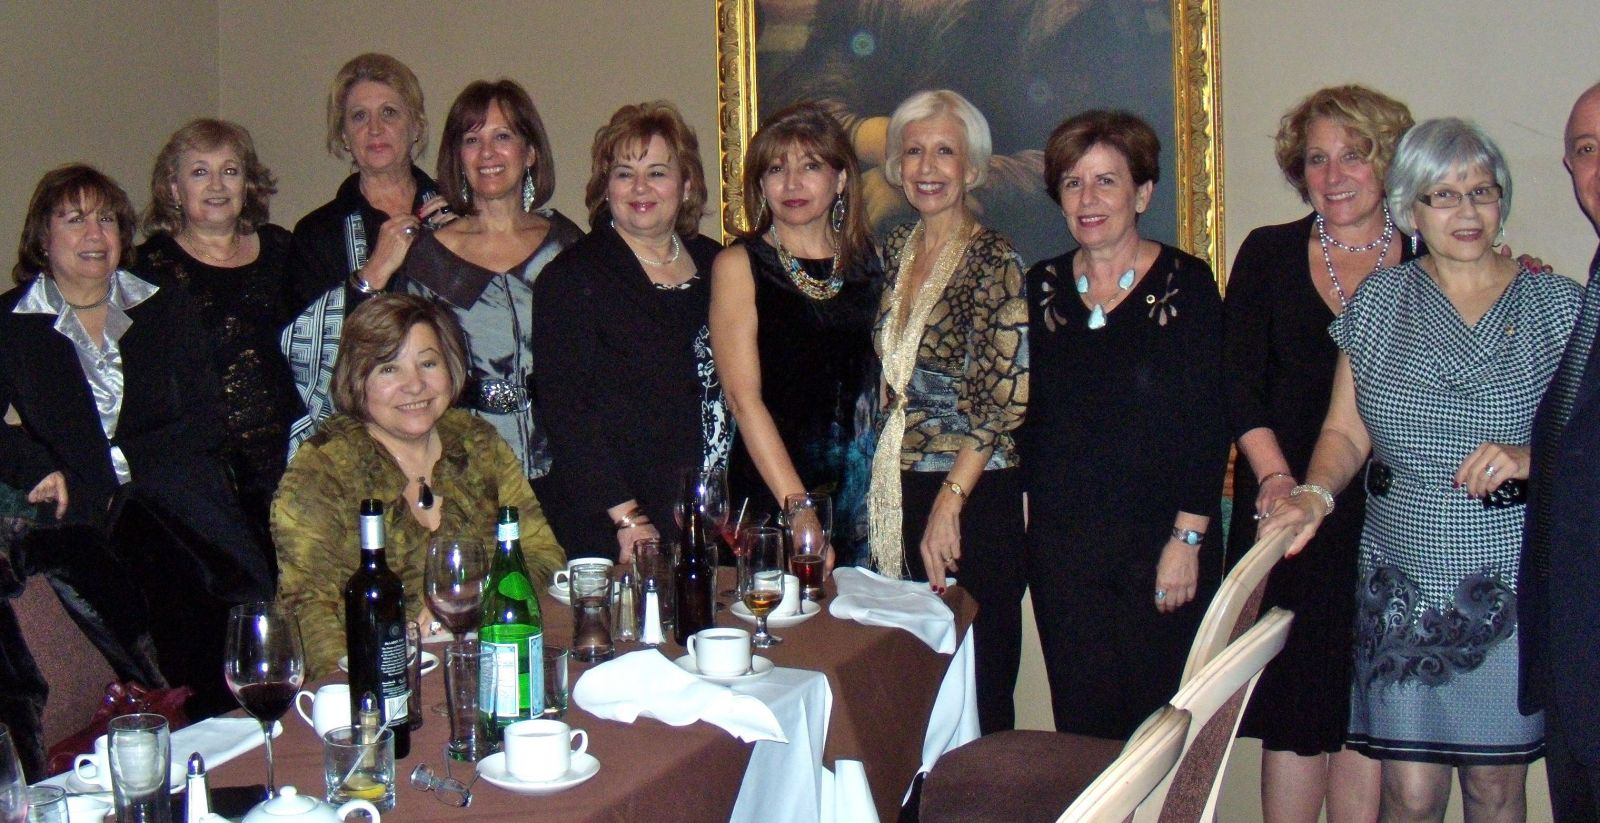 Members (Left to Right): Mary Fernández, Marta Macri, Cristina Balboa, Norah Arraya, Graciela Palmisano, Emanuela Bonafi